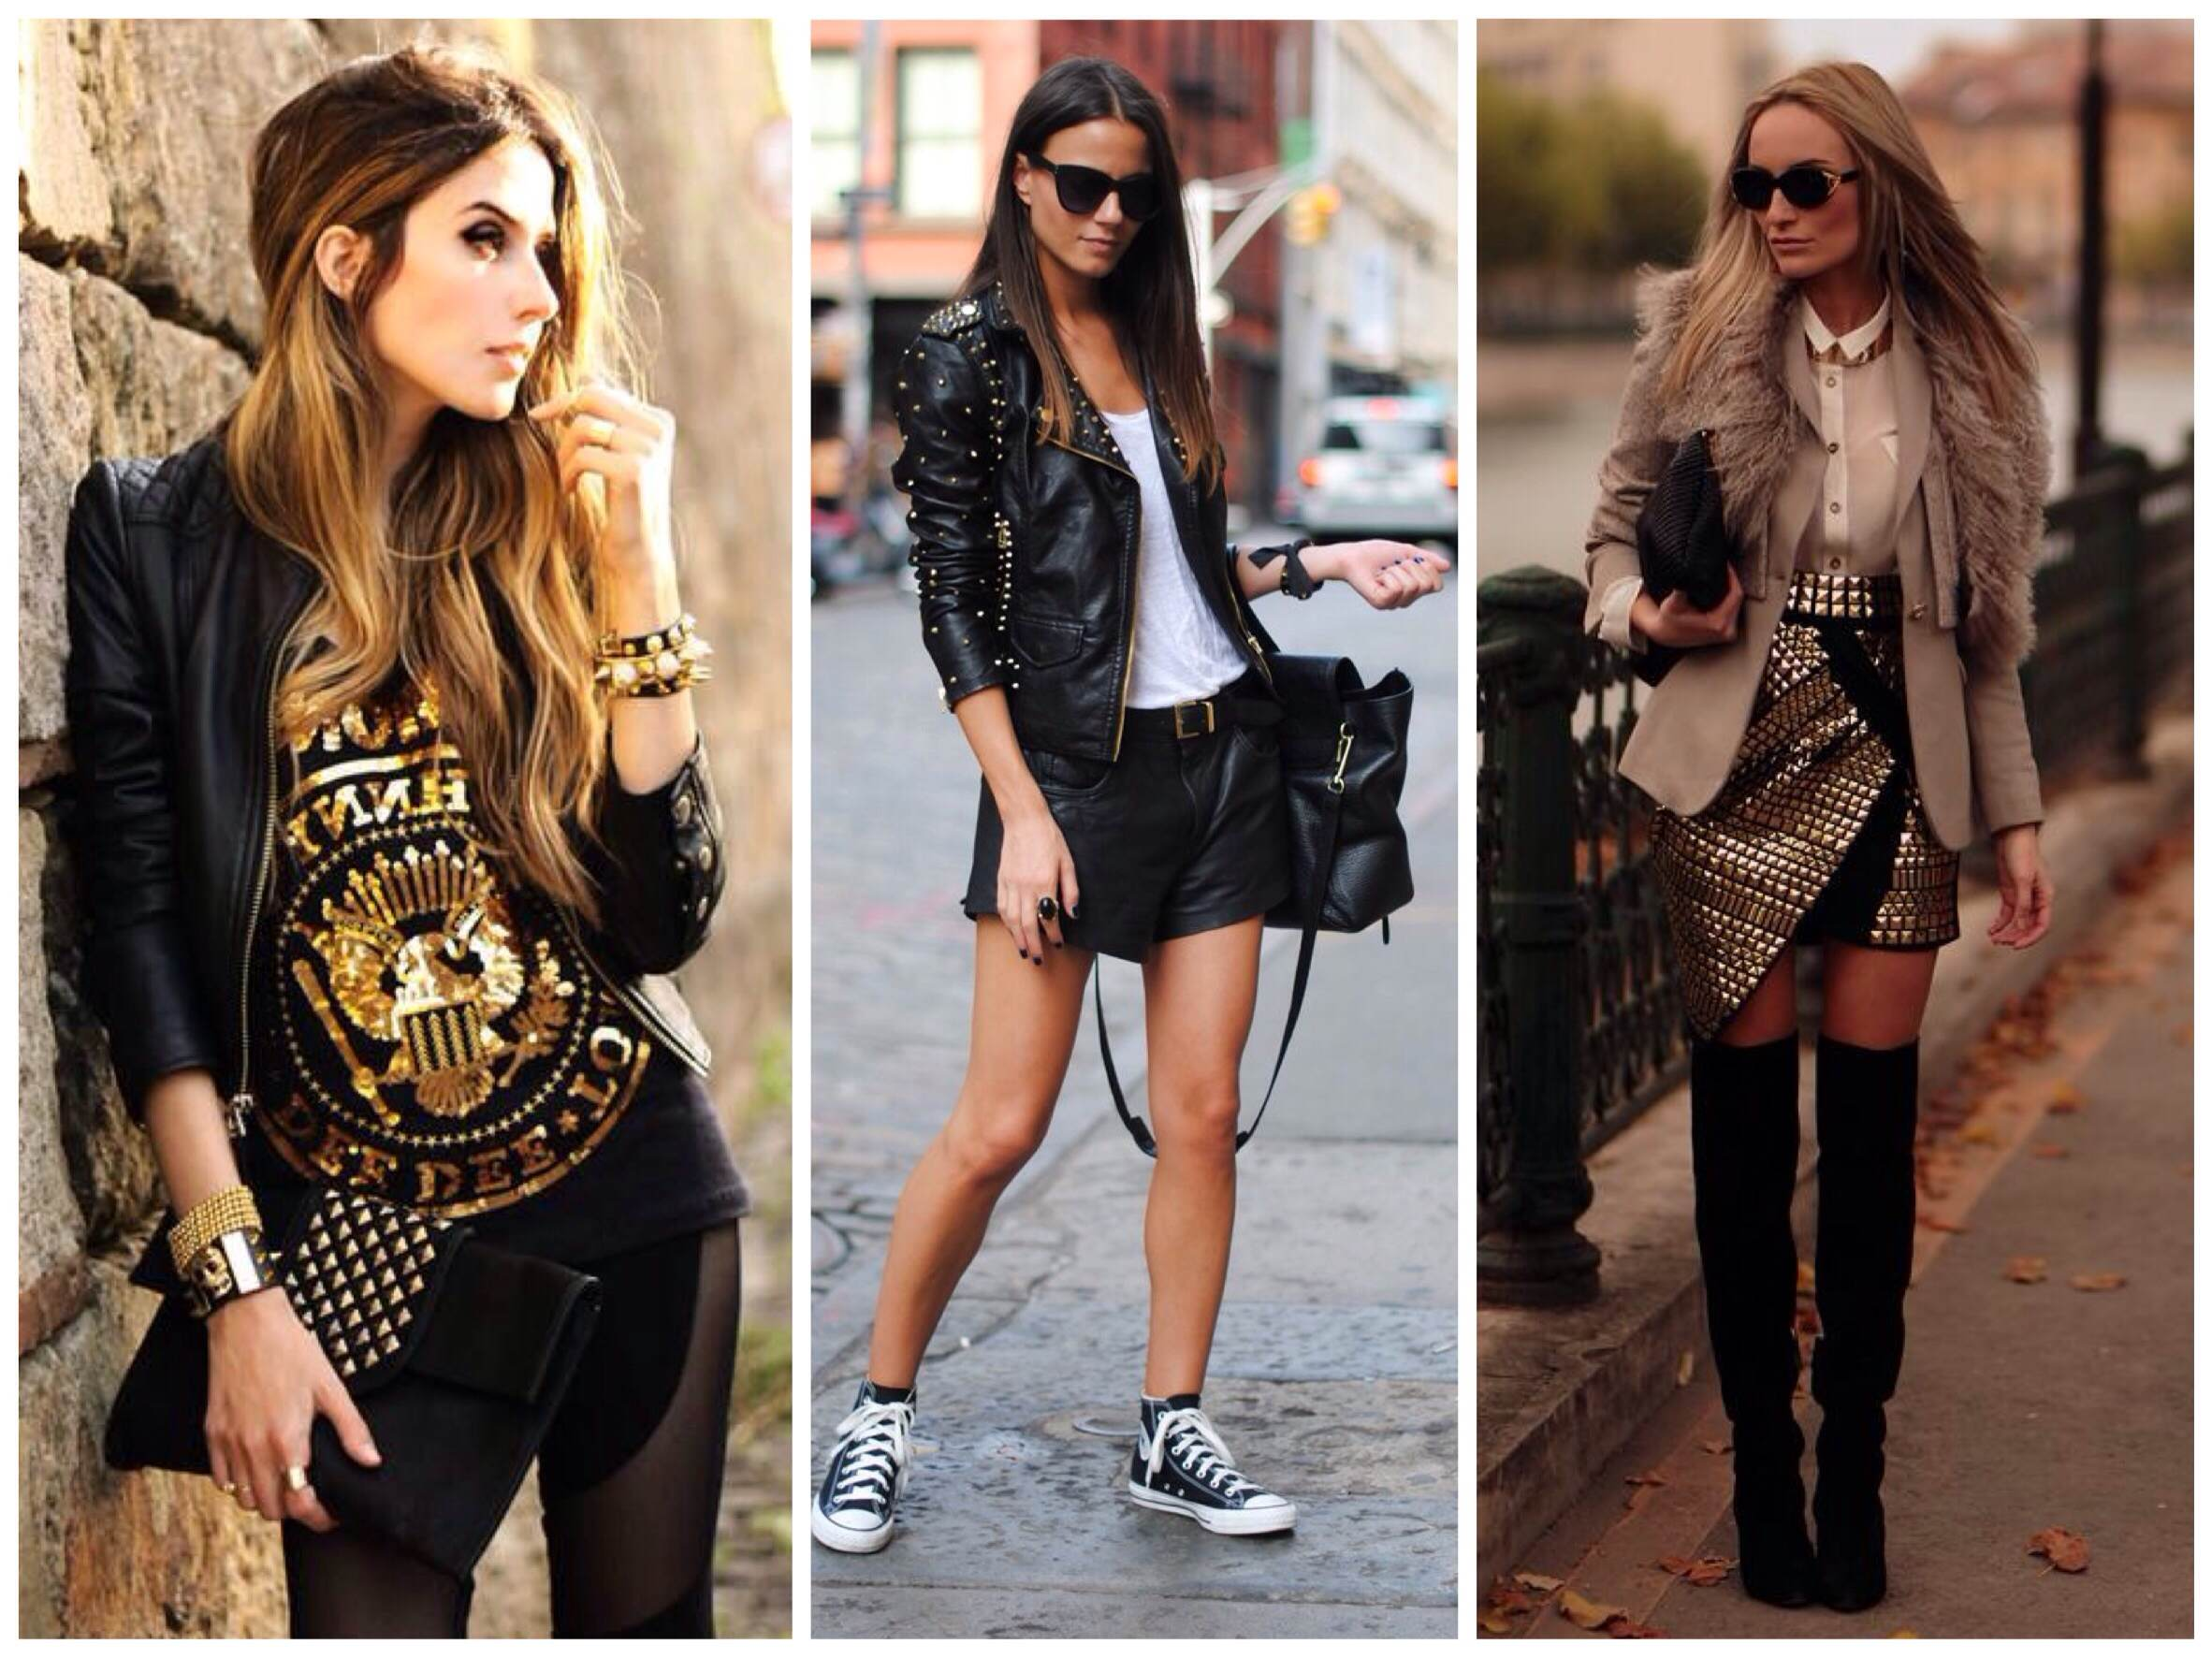 375 best Glam ROCK Fashion images on Pinterest Casual wear Glam rock inspired fashion